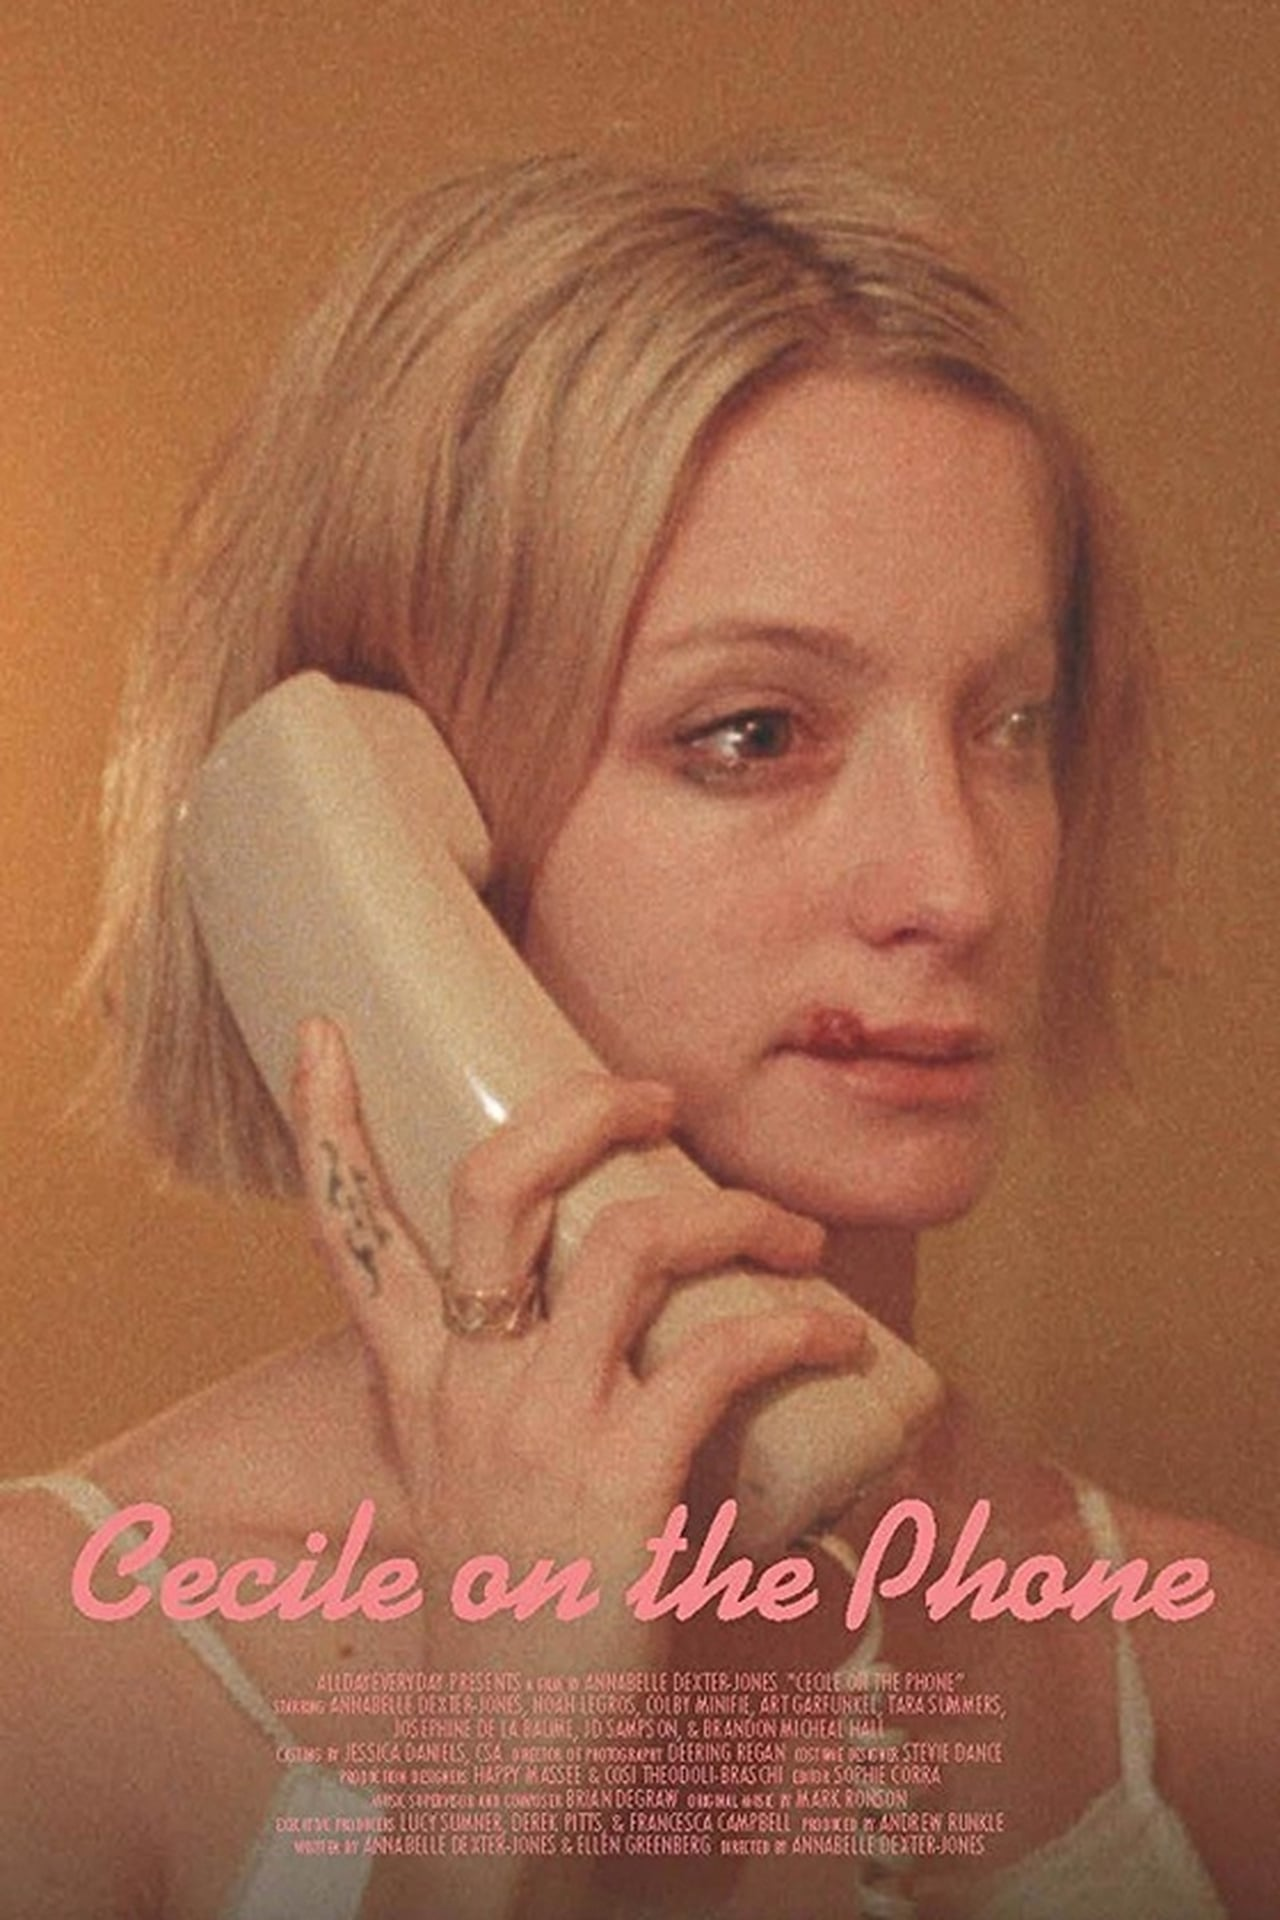 Cecile on the Phone